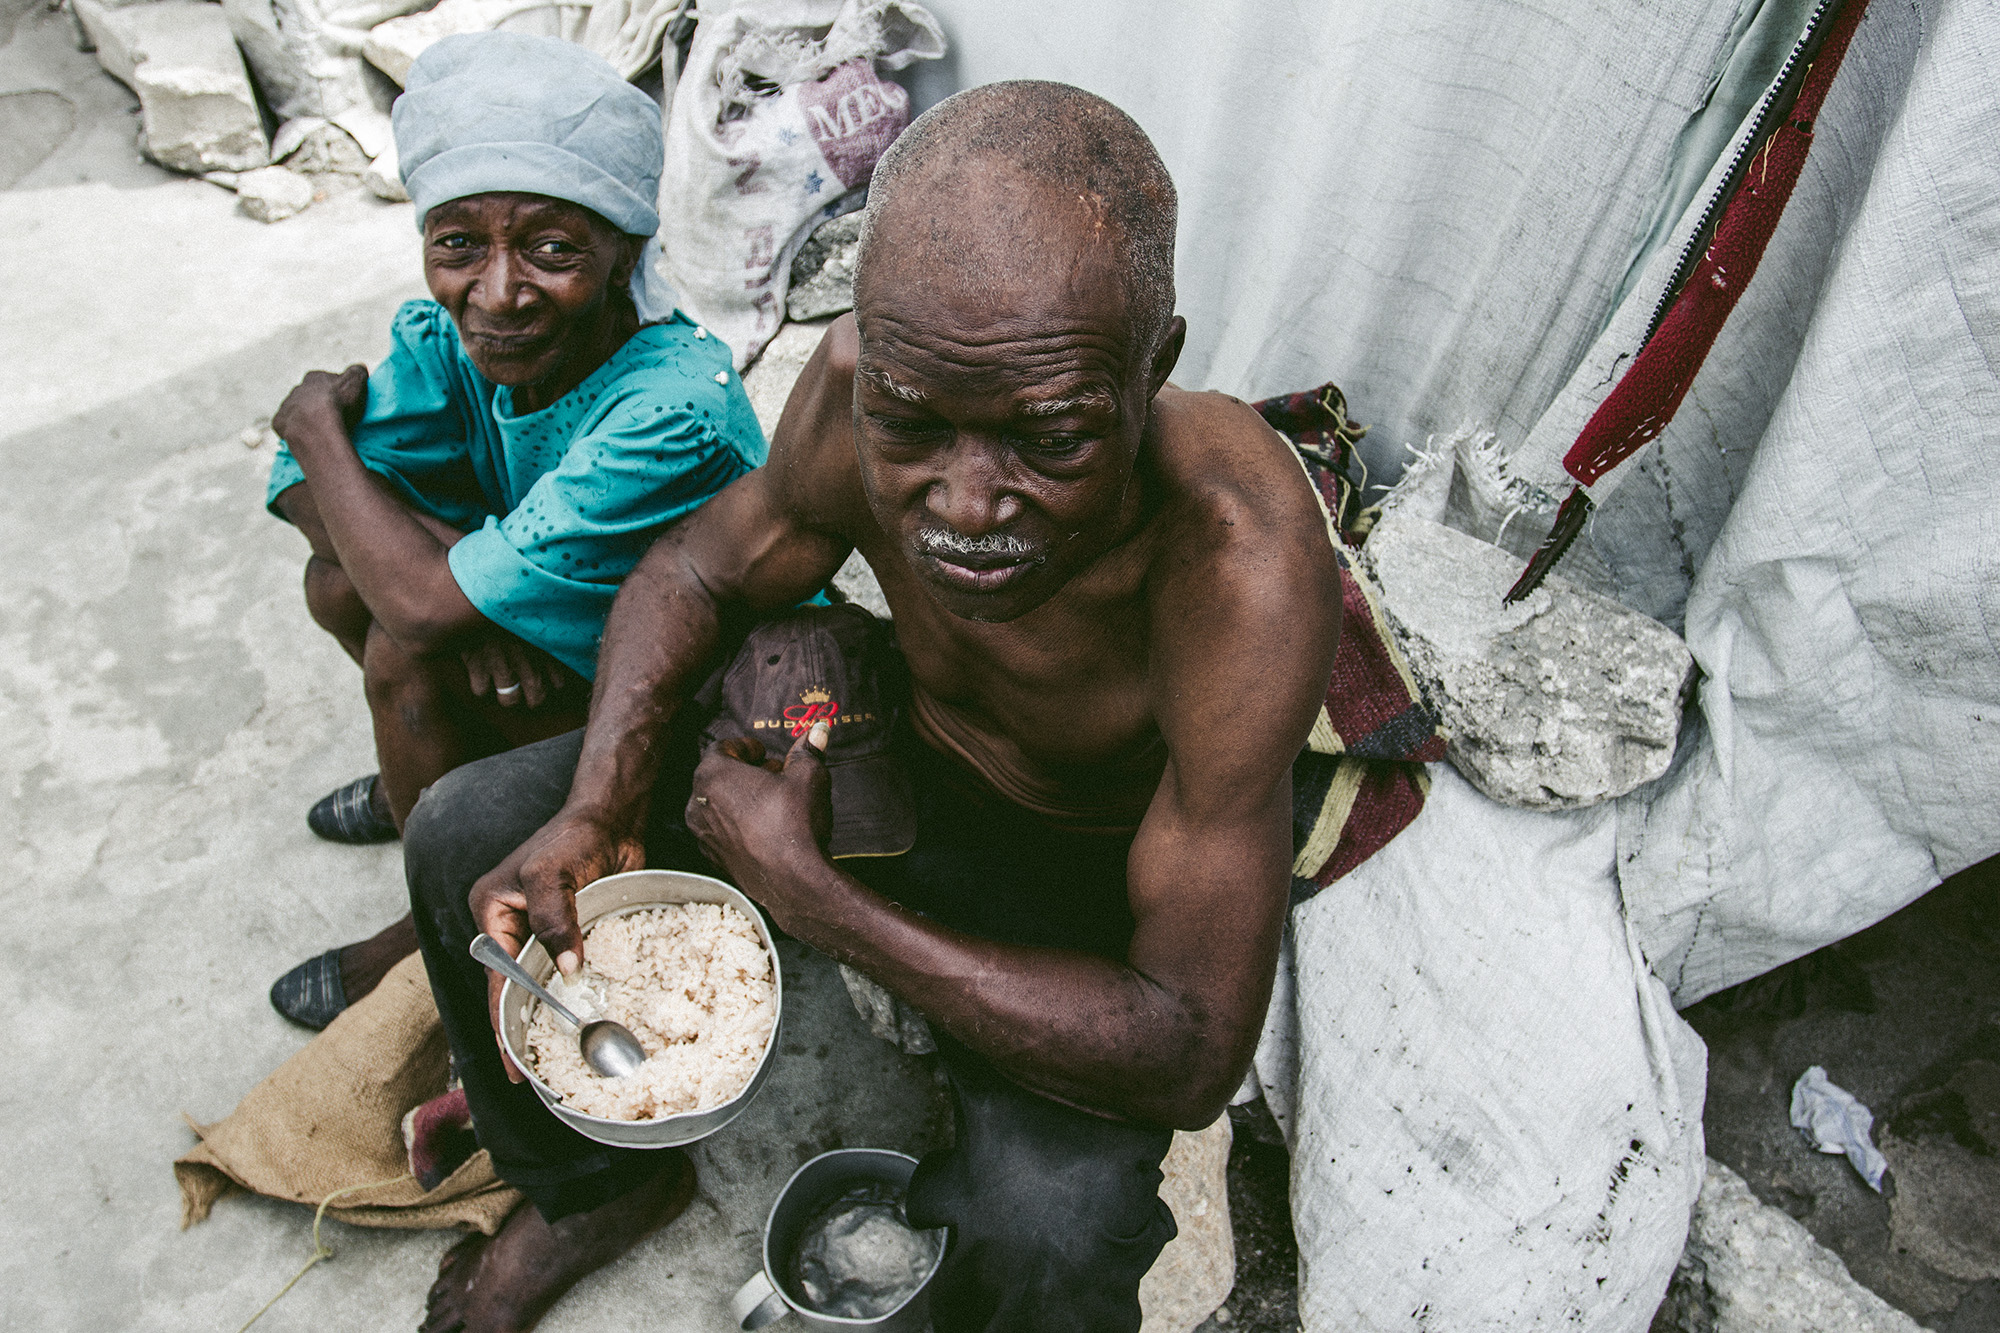 A Haitian refugee receives his daily ration